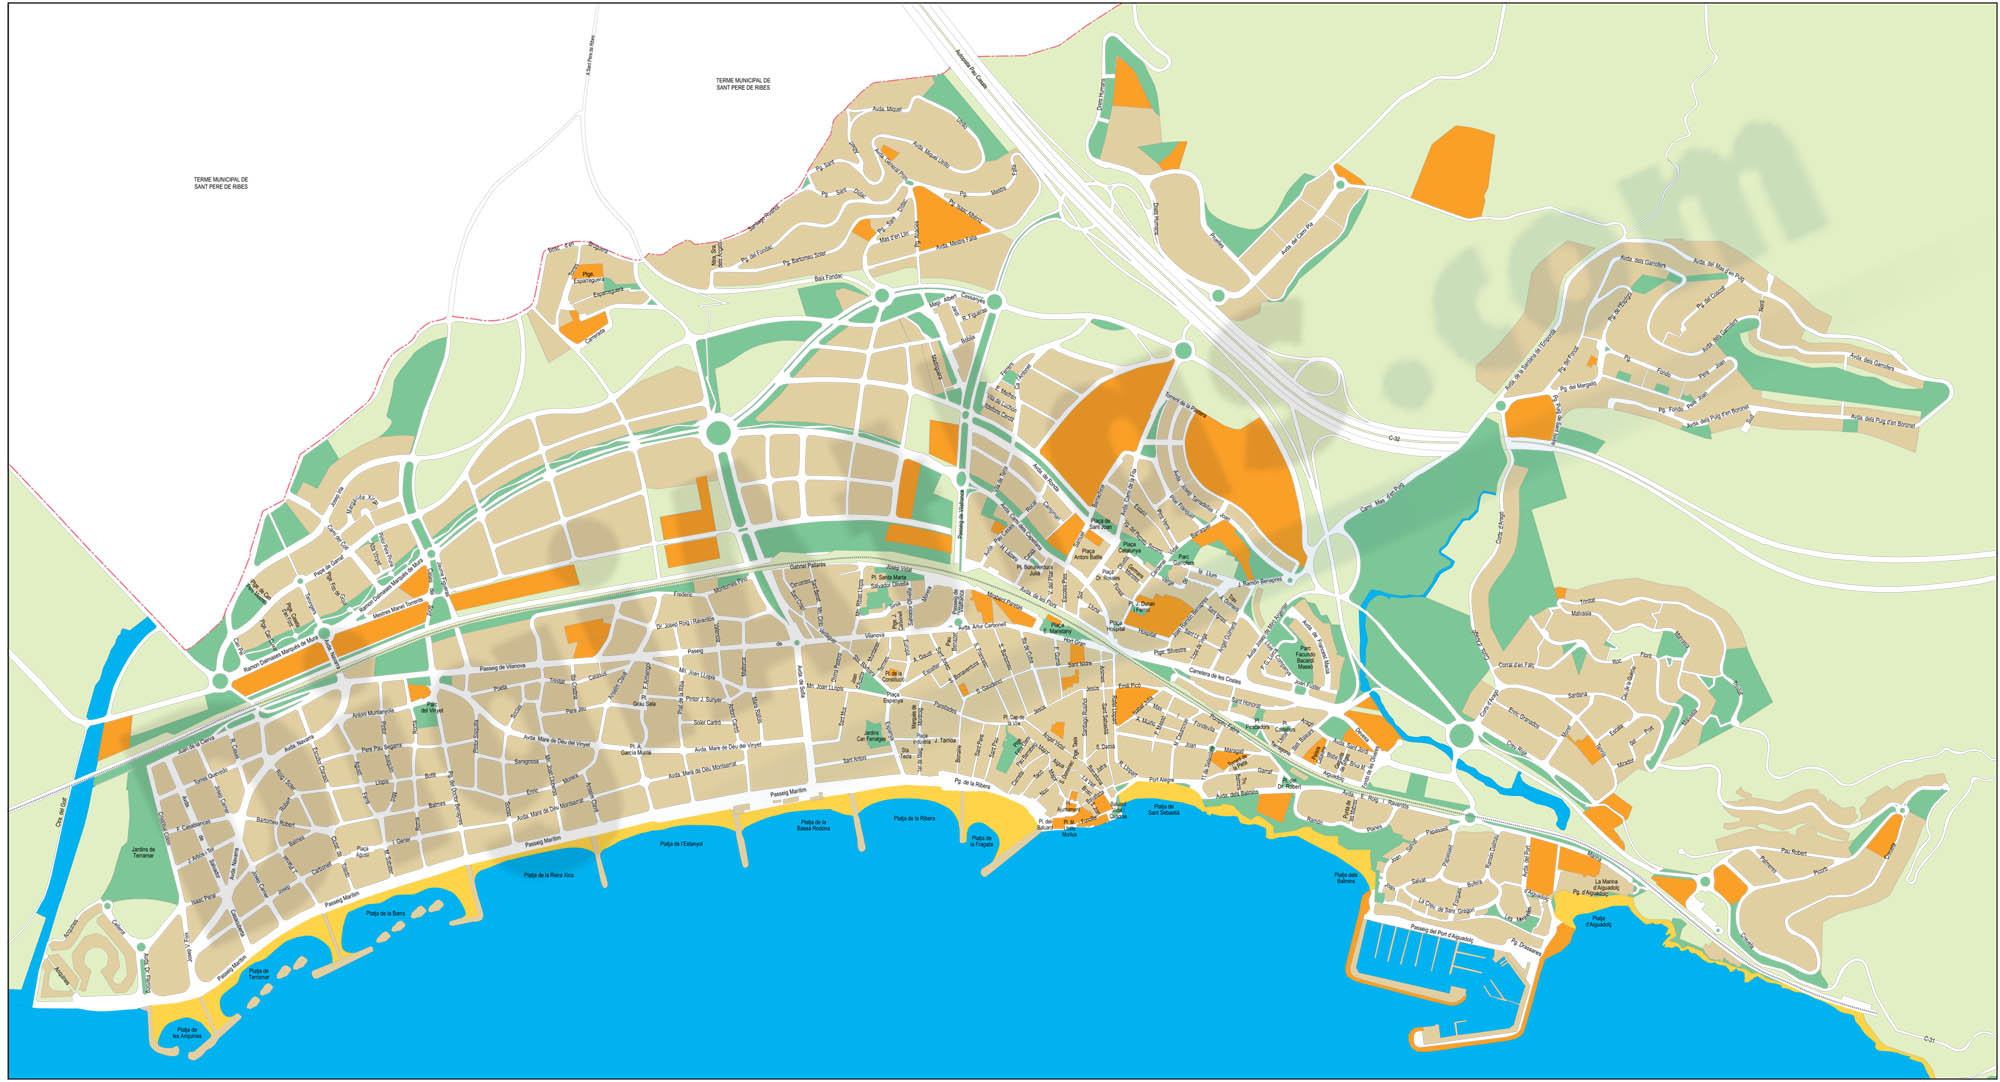 Sitges city map